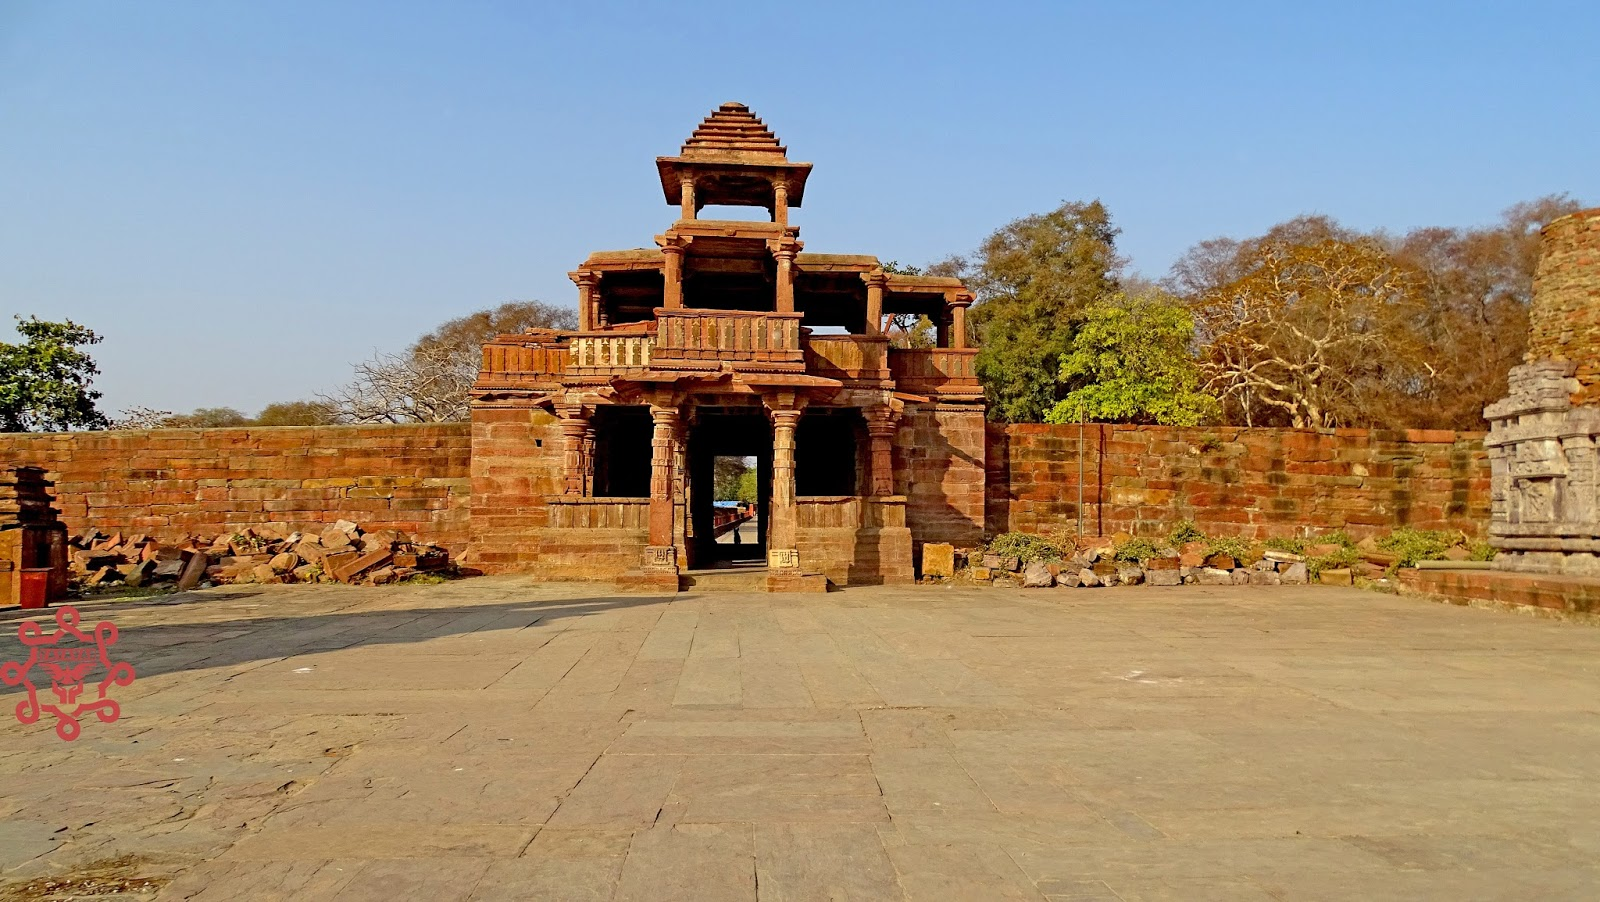 Entrance gate of Menal temple